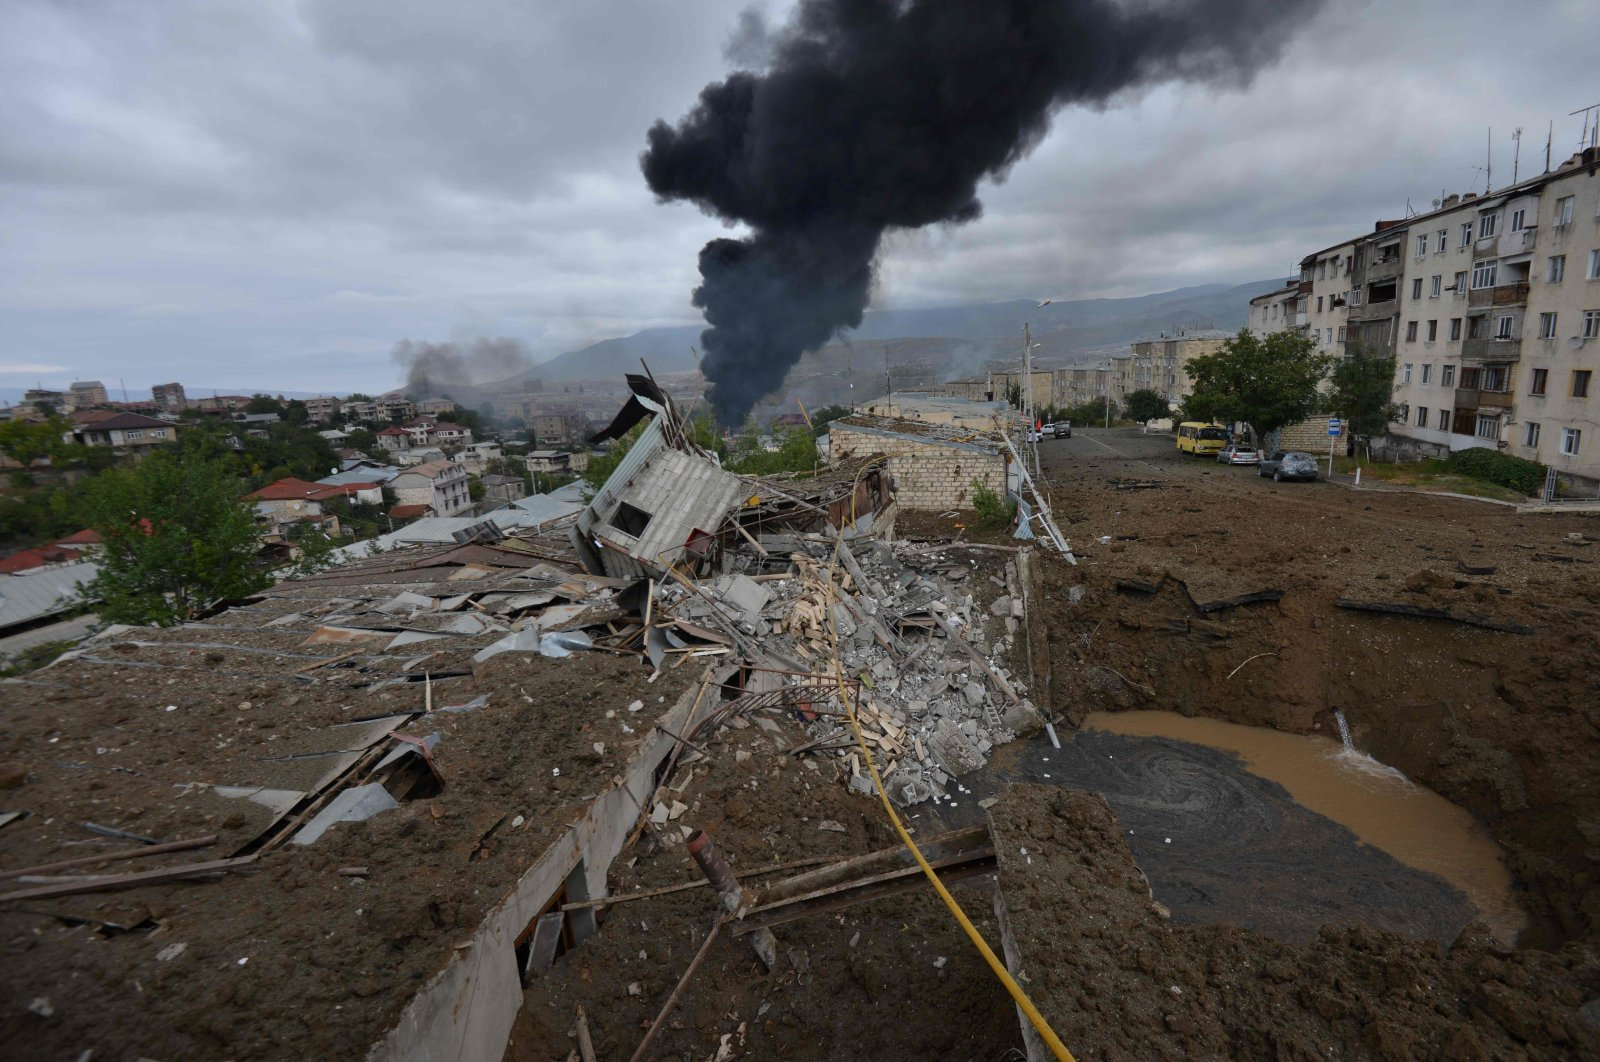 A view shows aftermath of recent shelling during the ongoing fighting between Armenia and Azerbaijan over the breakaway Nagorno-Karabakh region, in the disputed region's main city of Stepanakert on October 4, 2020. (AFP Photo)